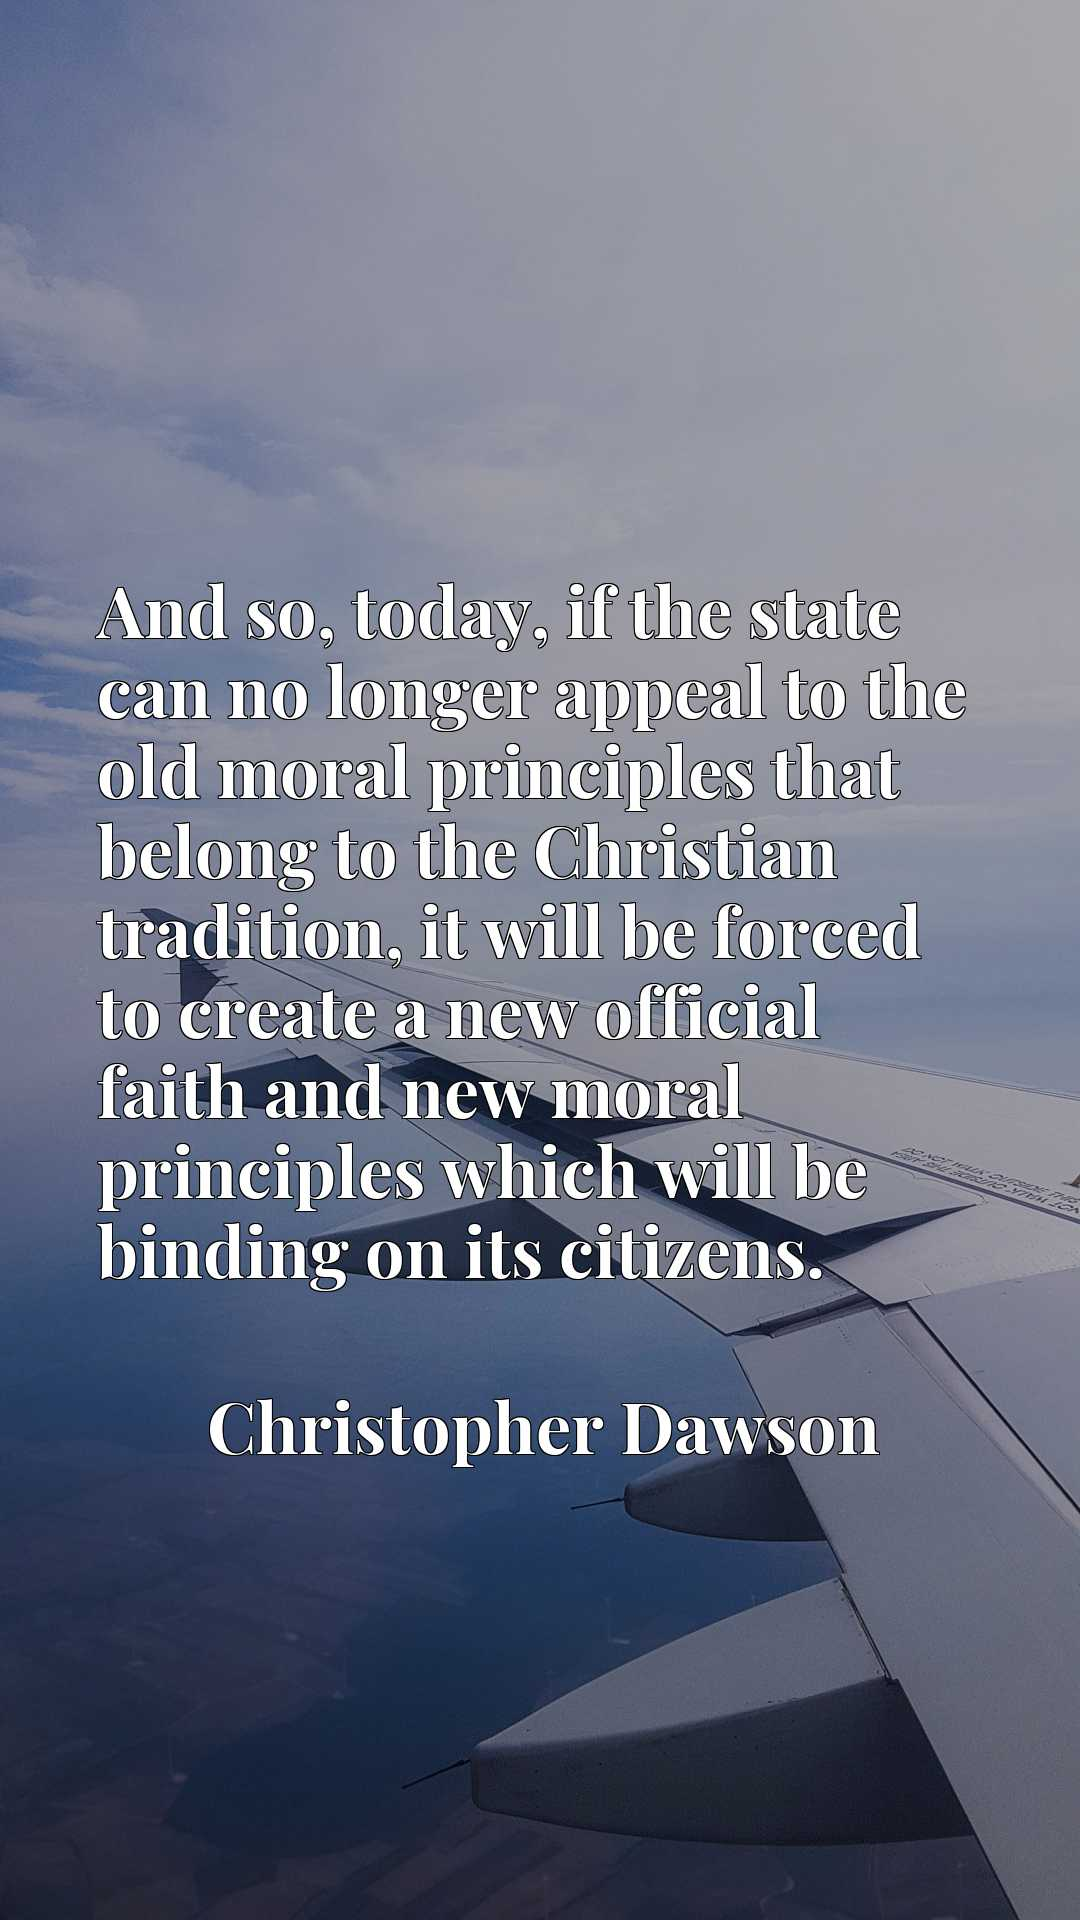 And so, today, if the state can no longer appeal to the old moral principles that belong to the Christian tradition, it will be forced to create a new official faith and new moral principles which will be binding on its citizens.